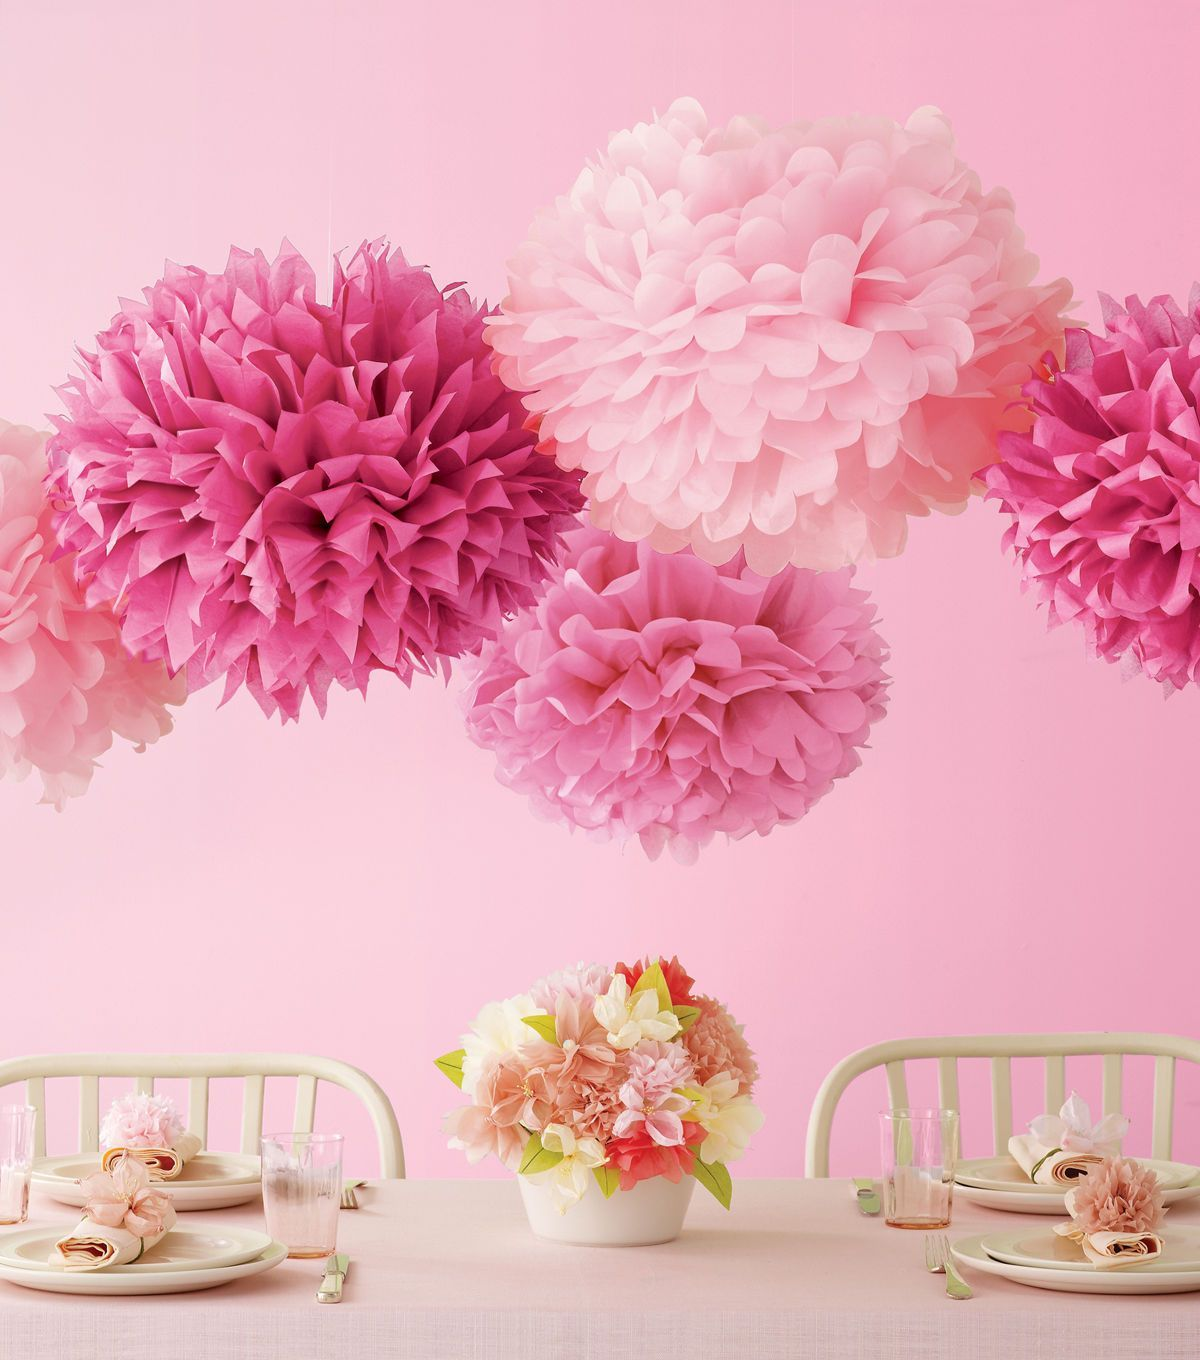 We Love This Brunch Setting With Martha Stewart Crafts Pom Poms